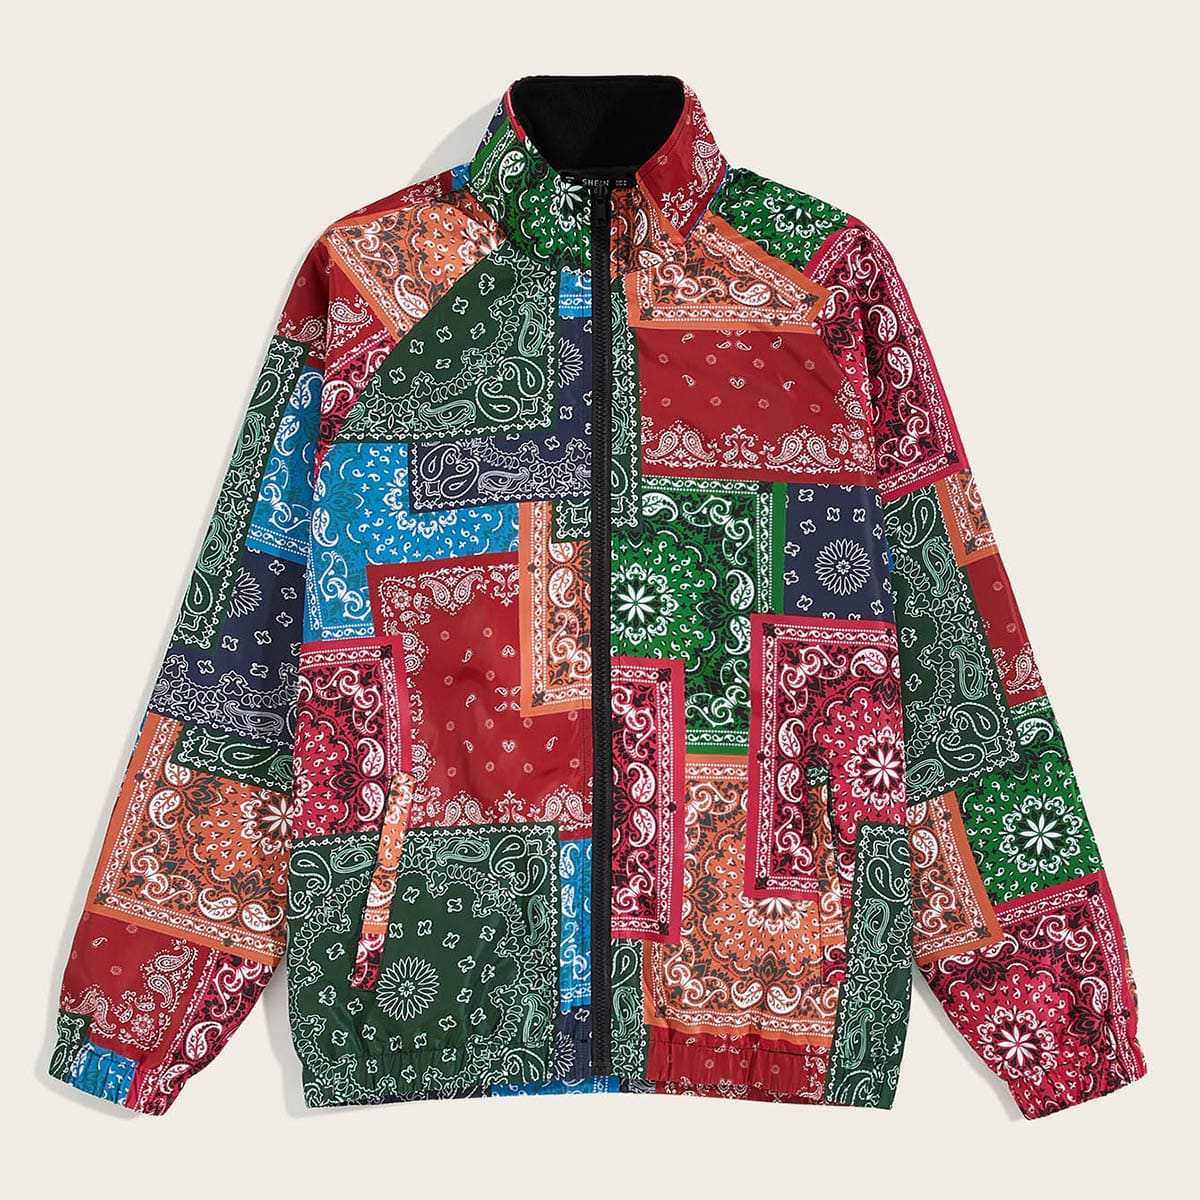 Guys Paisley and Tribal Print Raglan Sleeve Jacket in Multicolor by ROMWE on GOOFASH